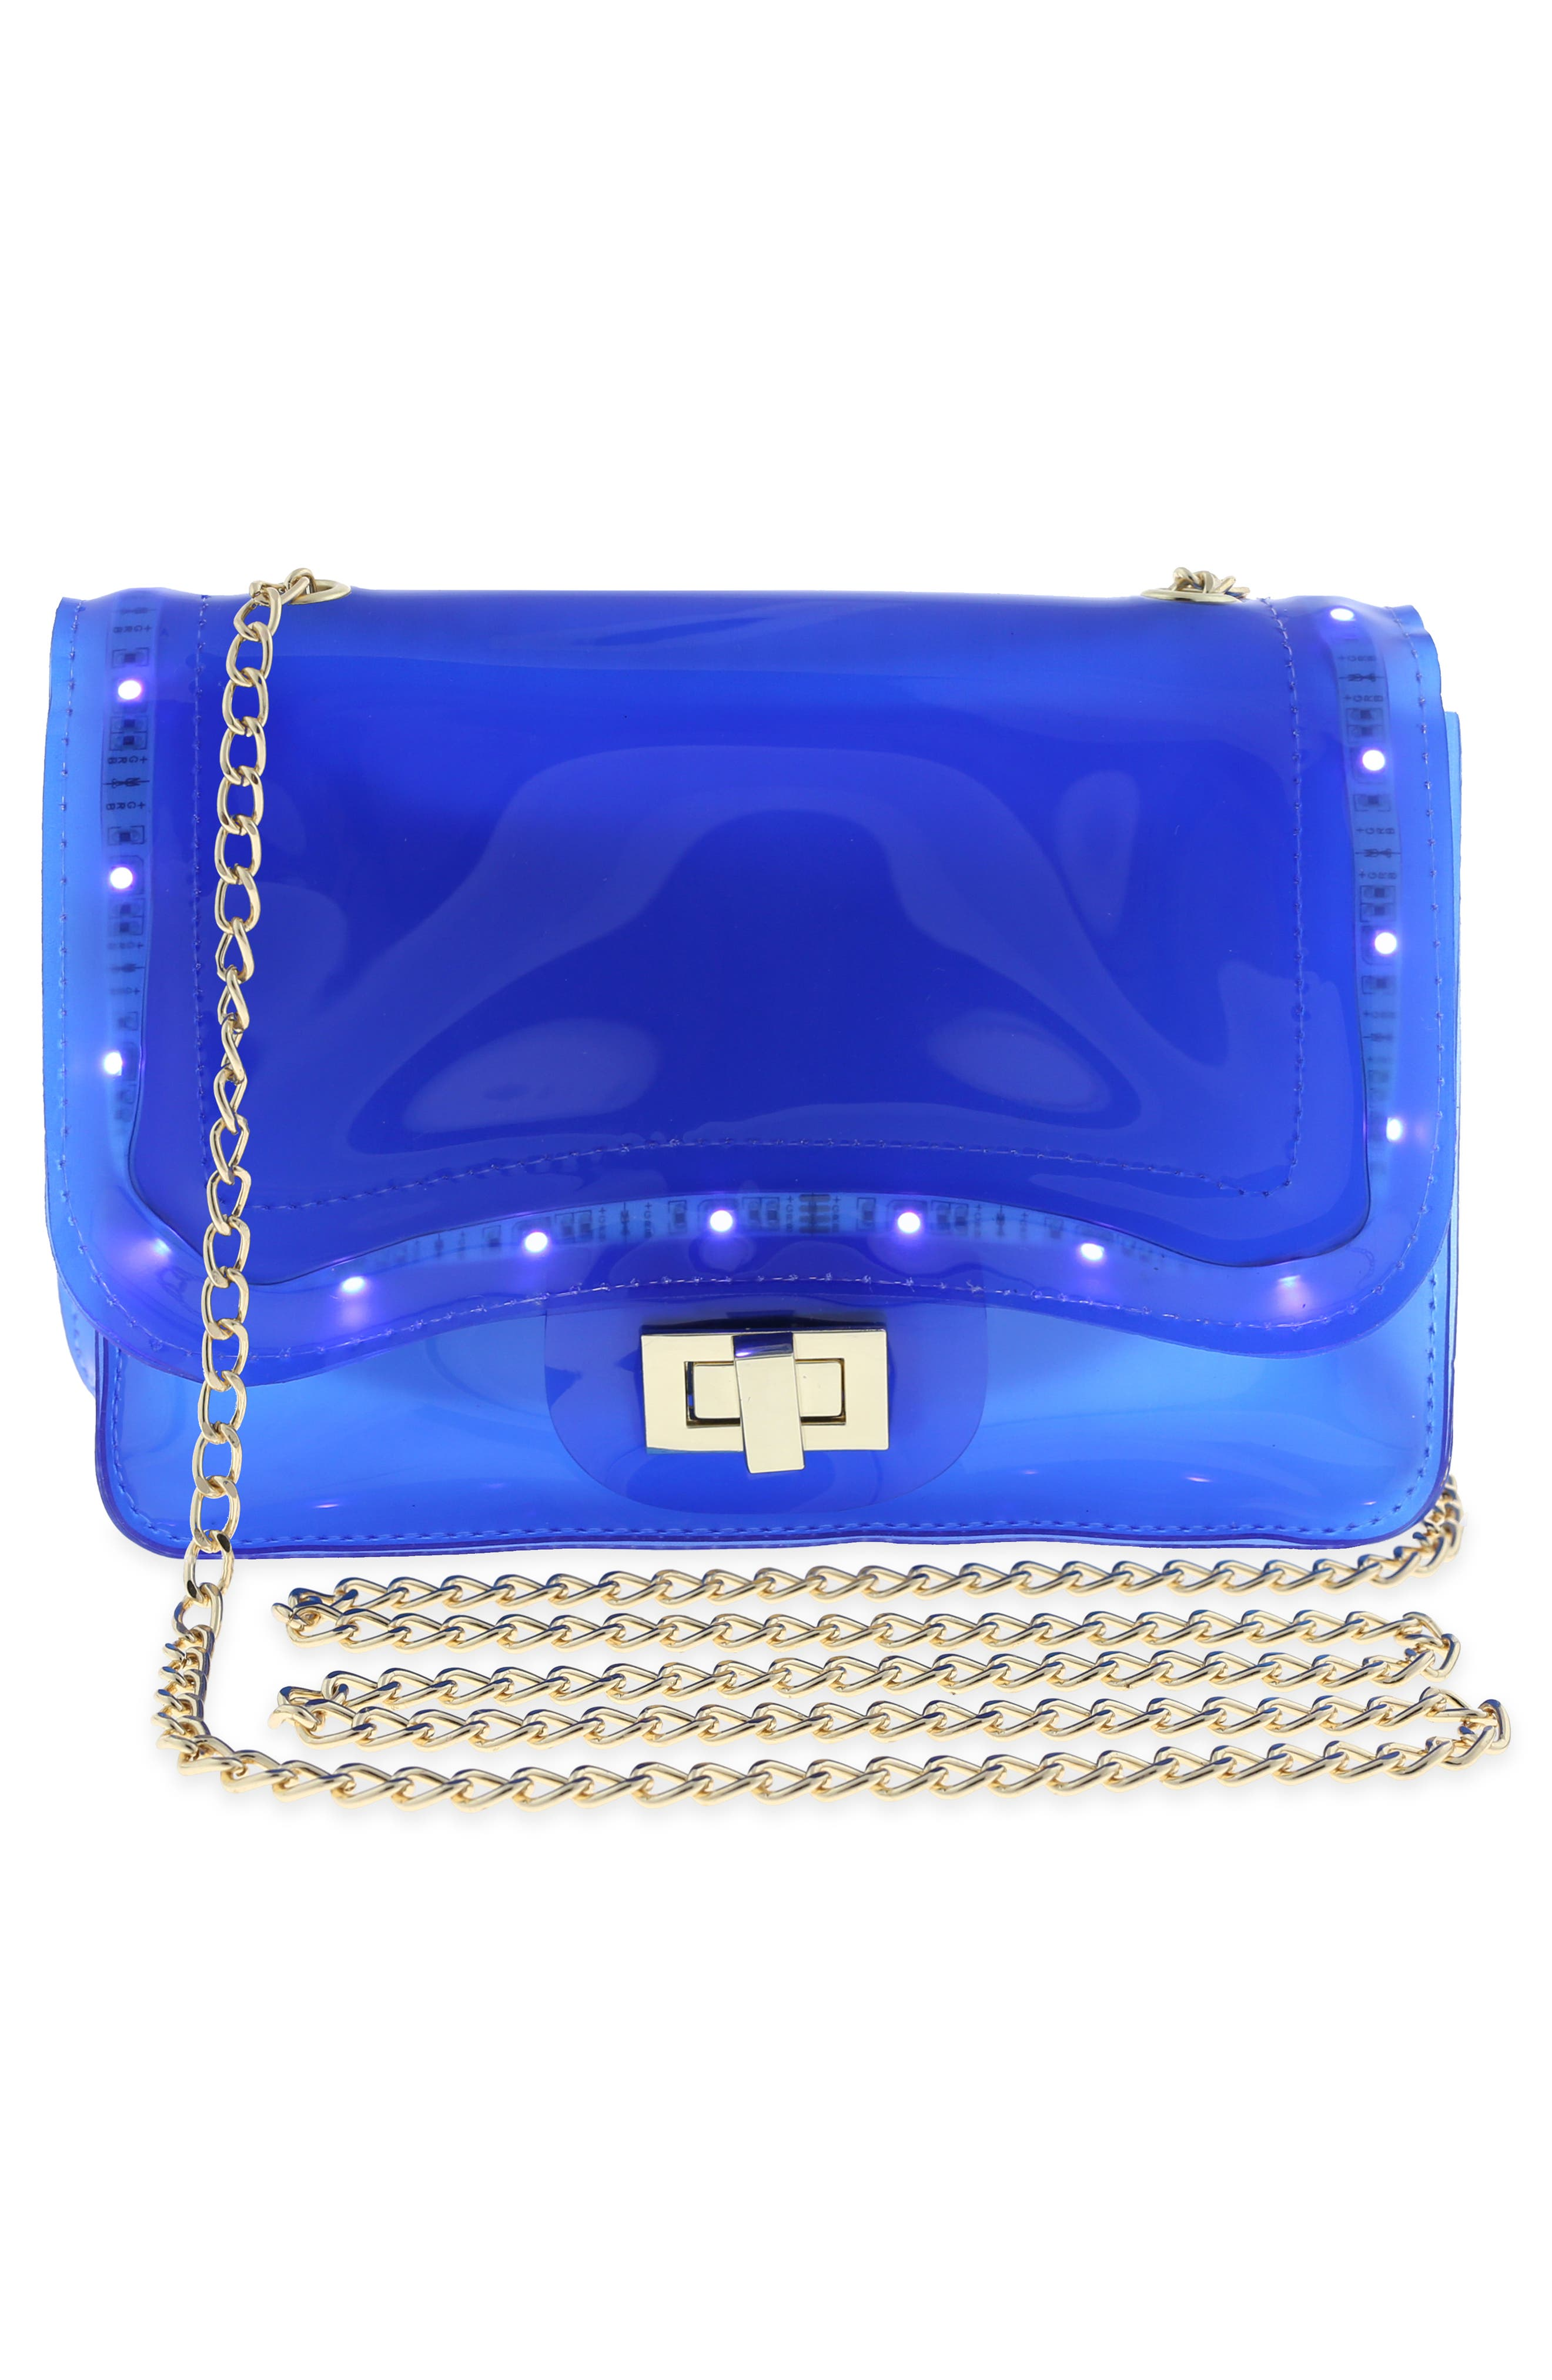 LED Light-Up Jelly Crossbody Bag,                             Alternate thumbnail 6, color,                             435